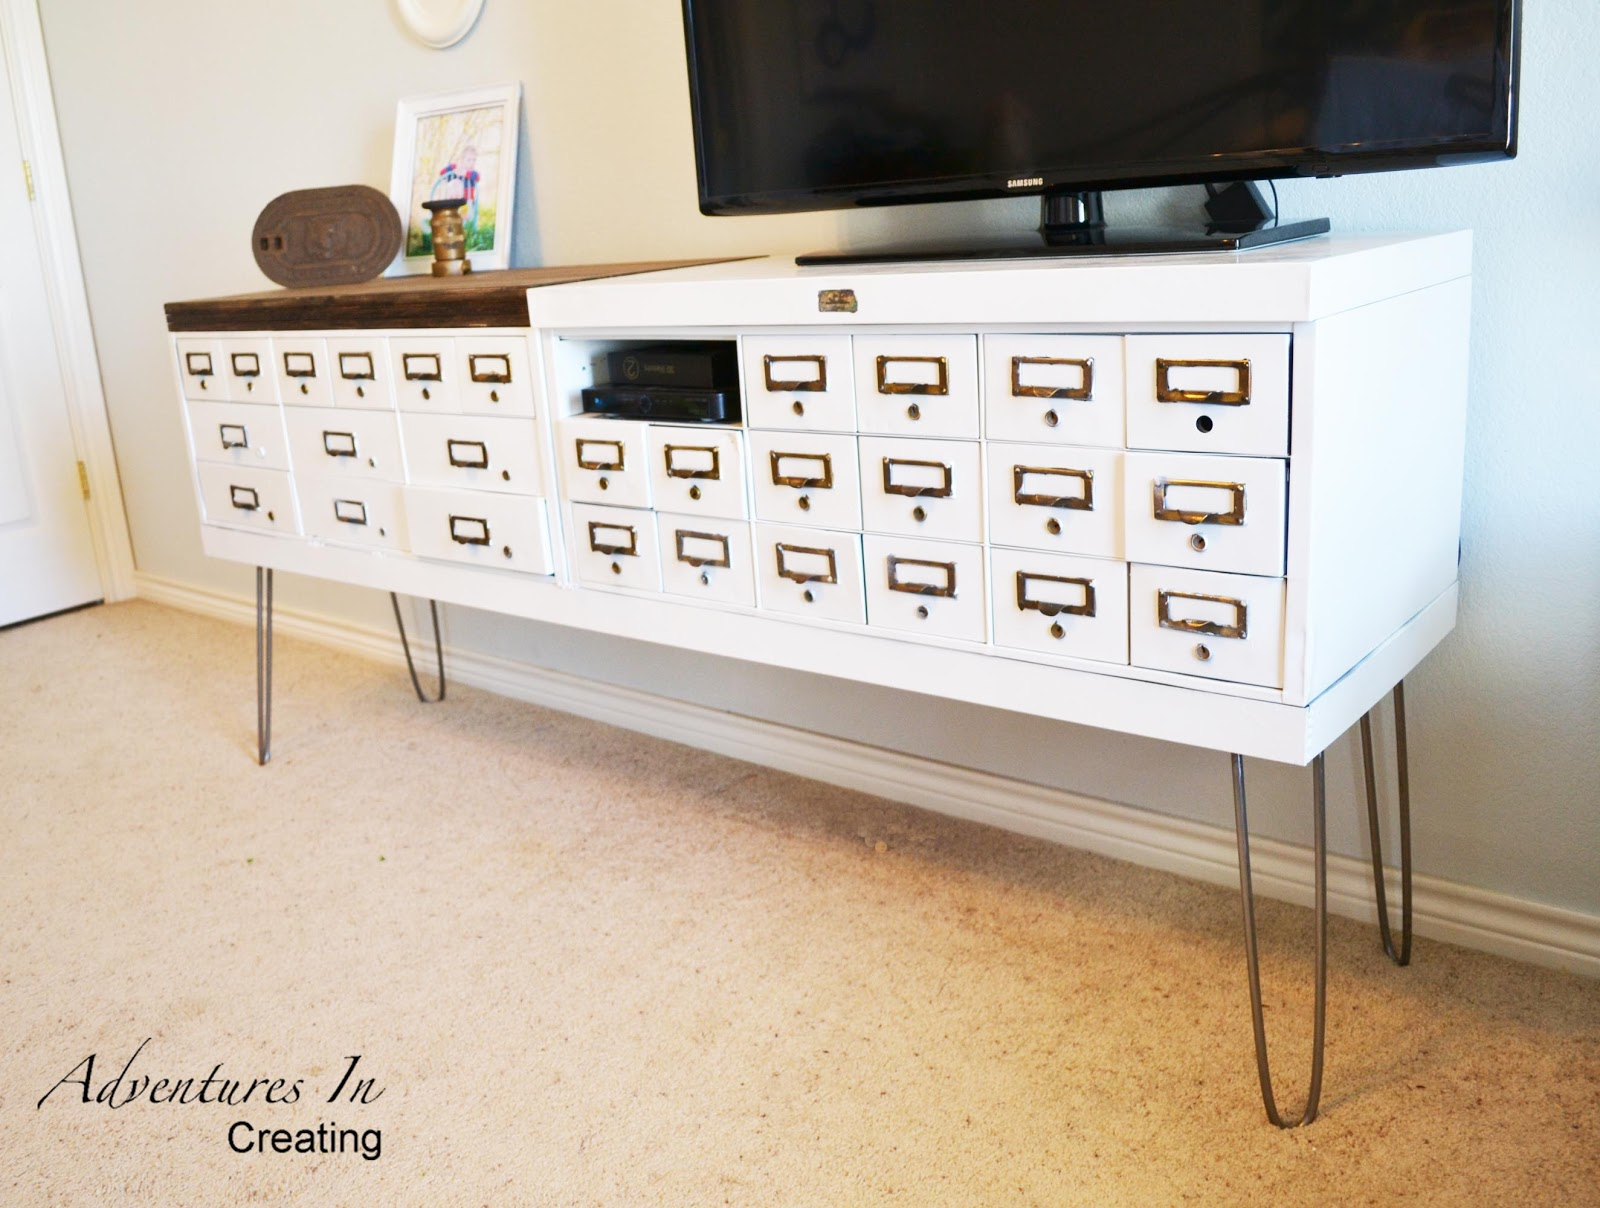 adventures in creating diy safe deposit box turned tv console. Black Bedroom Furniture Sets. Home Design Ideas